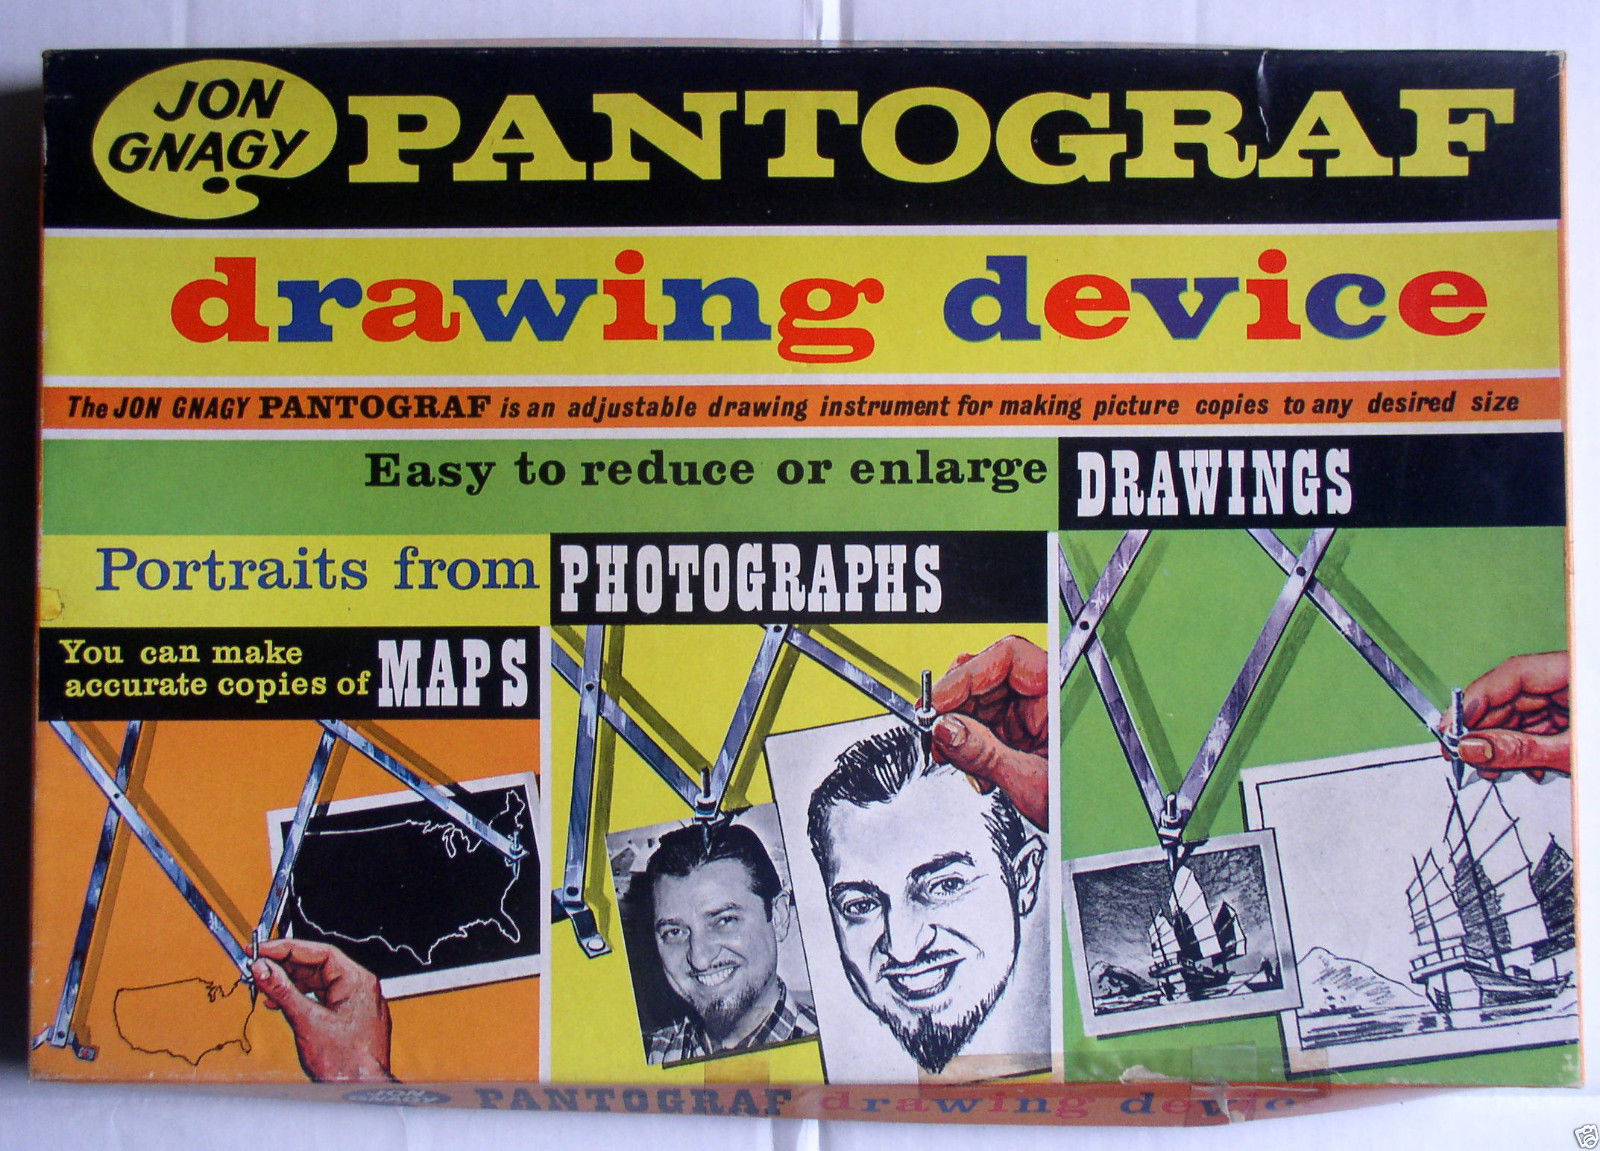 Jon Gnagy Pantograf drawing device for copying pictures and other images, reduce